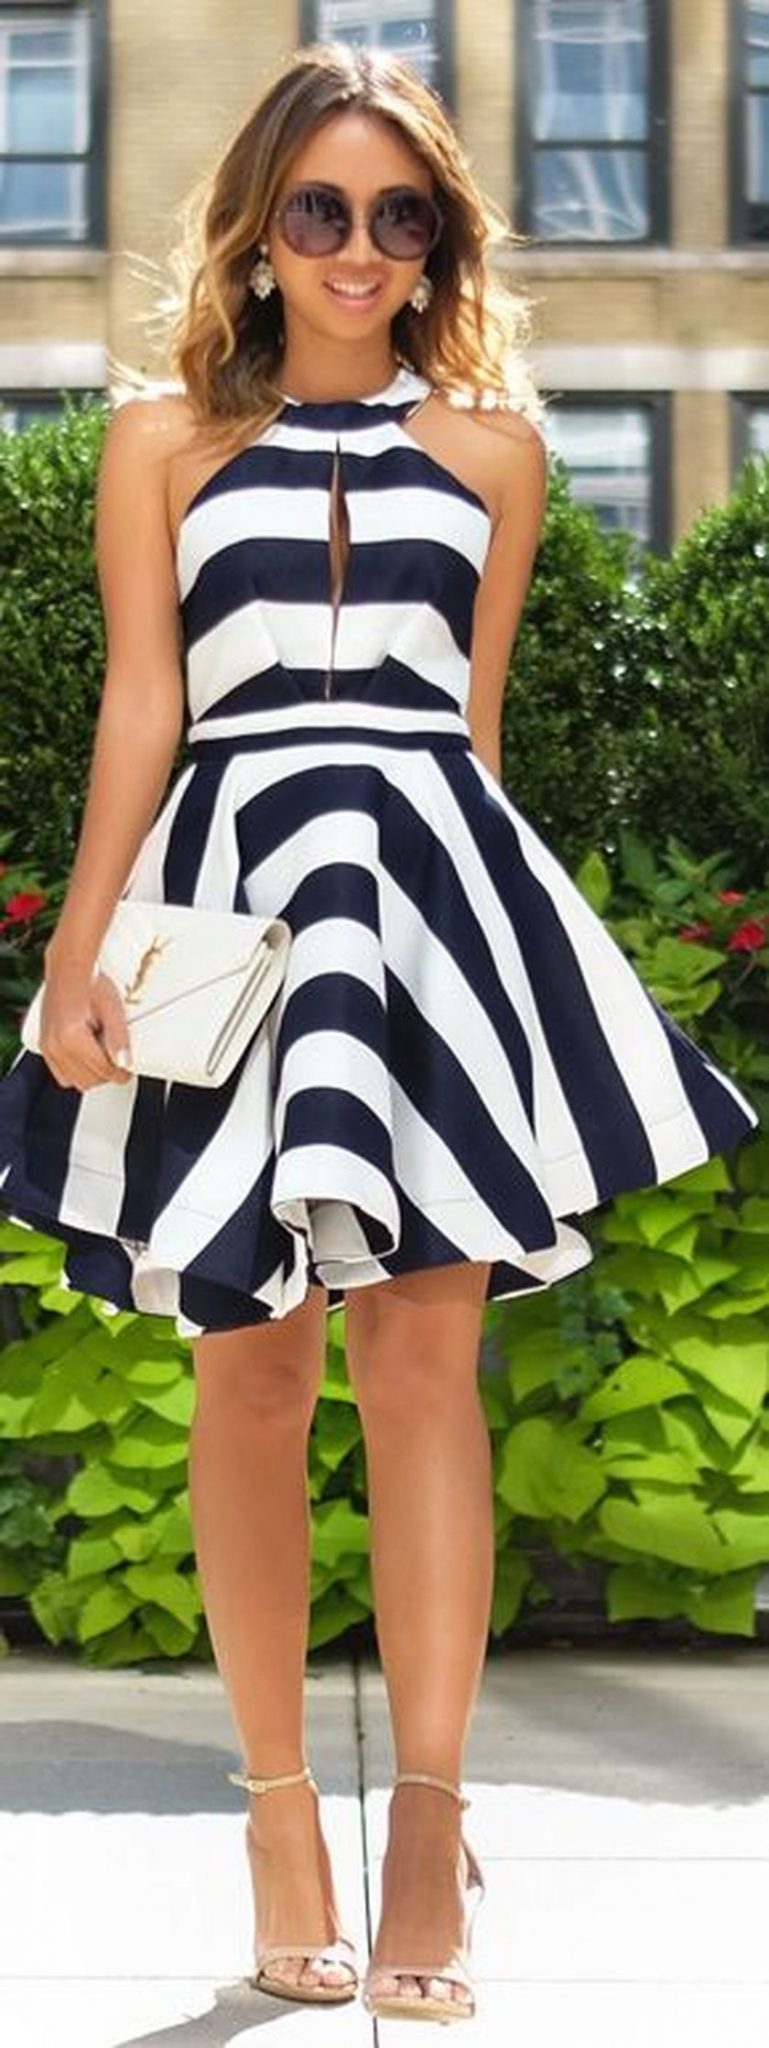 how to make a black and white striped cale